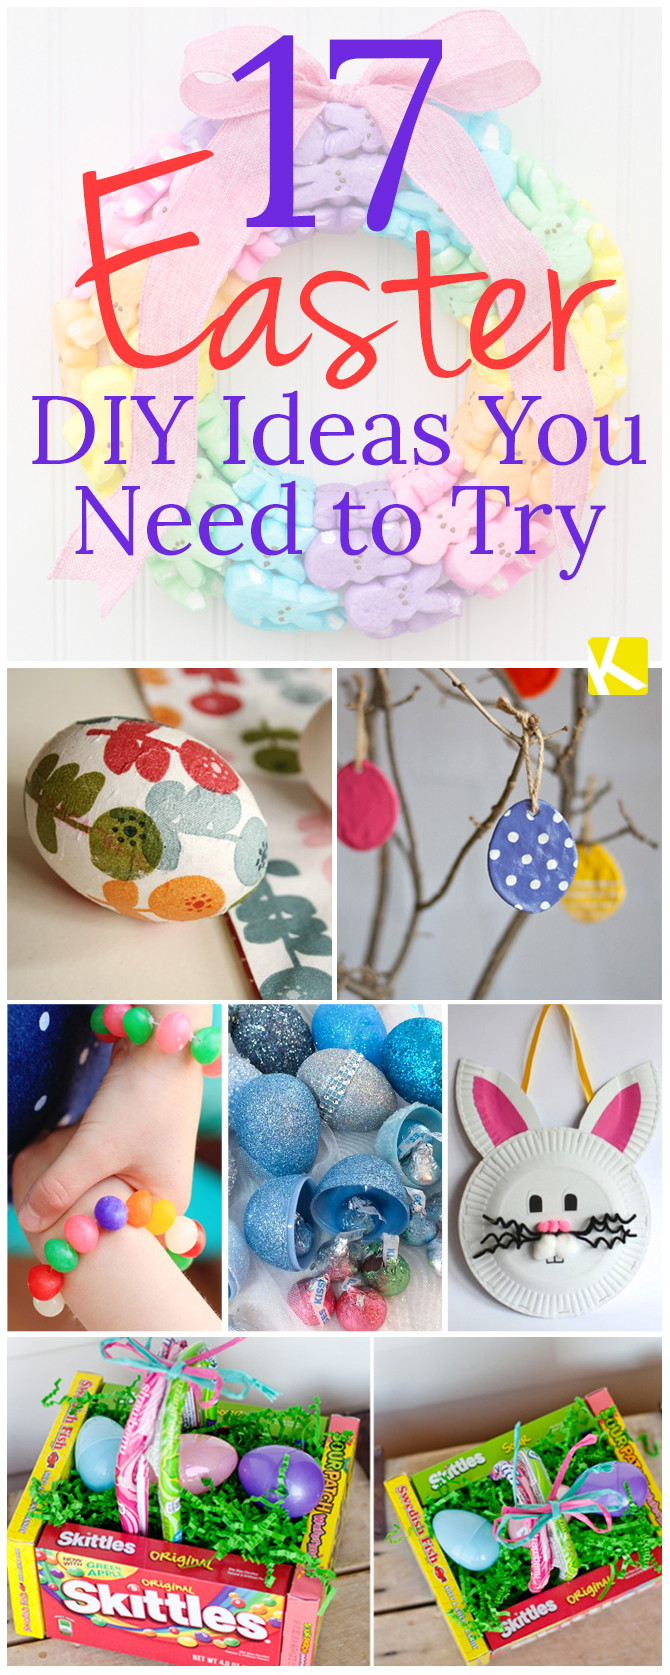 17 Easter DIY Ideas You Need to Try